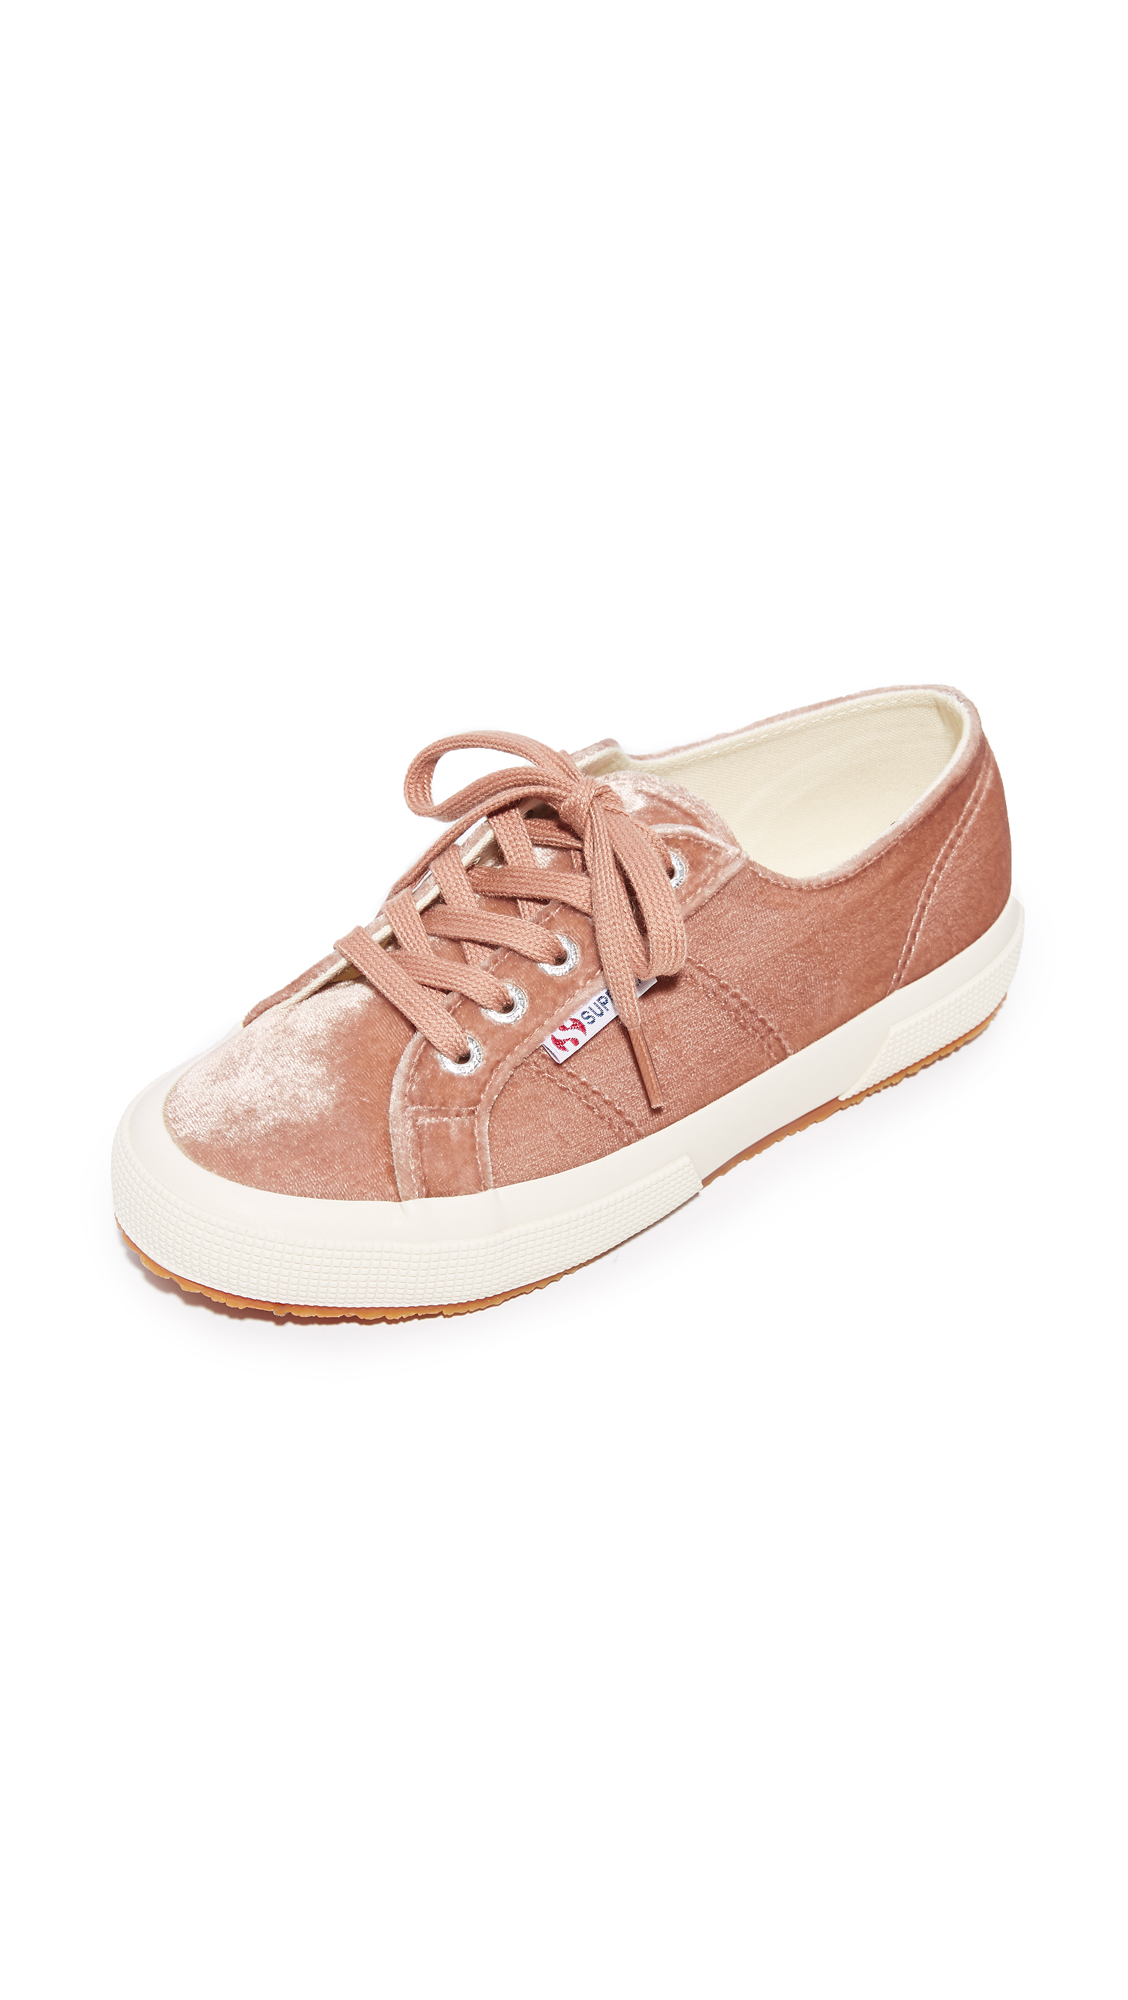 Superga 2750 Velvet Sneakers - Blush